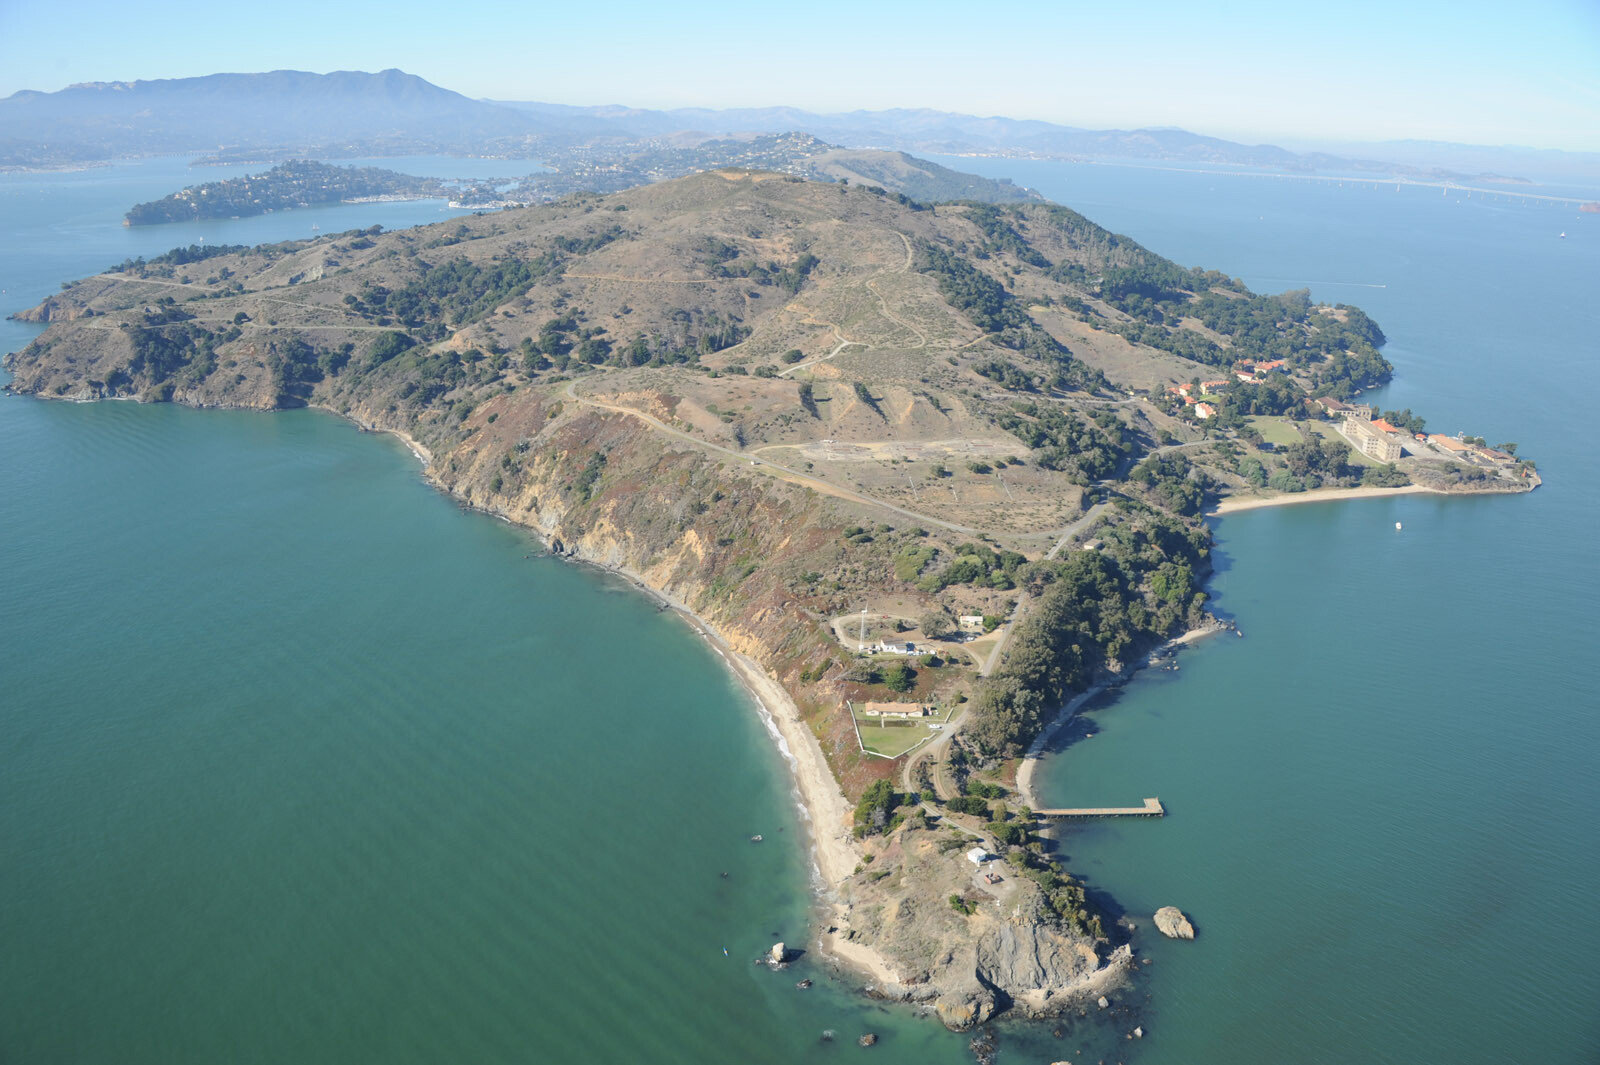 angel island Saturday, june 23, 2018 • angel island state park, ca • course map set for its 3rd annual running as spring is giving way to summer here on the largest natural island in san francisco bay.